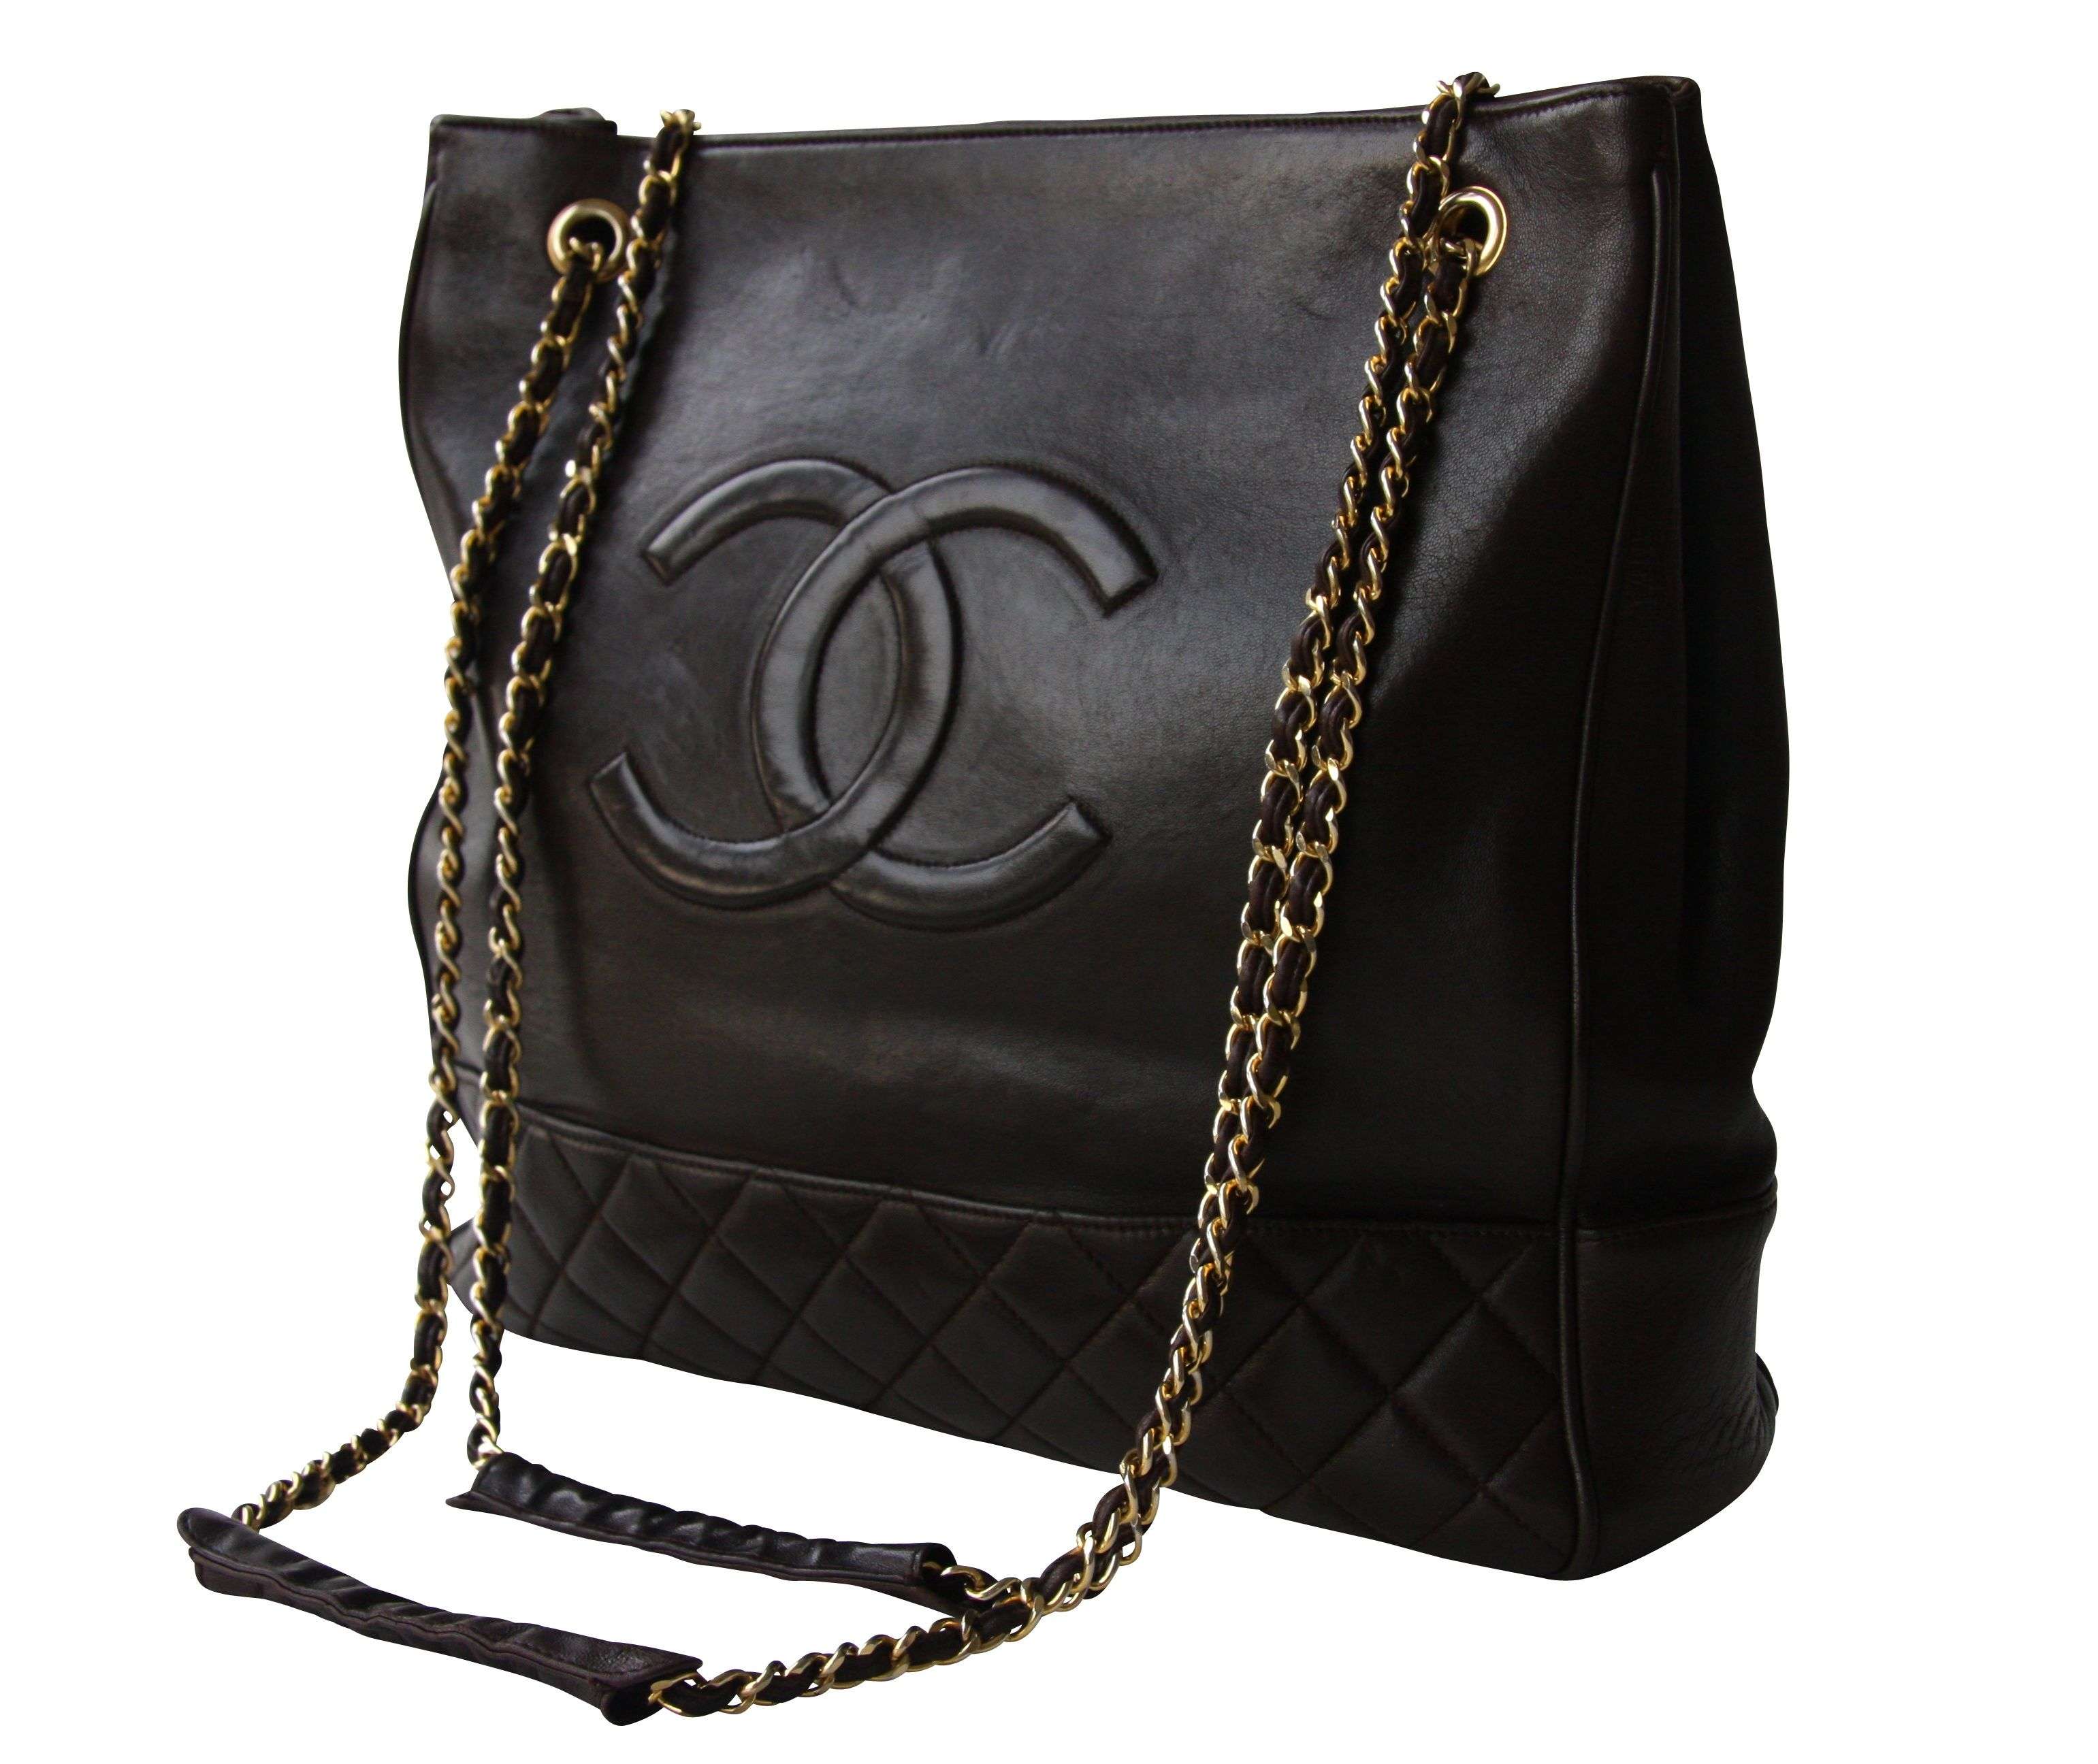 Chanel Handbags | Three absolutely stunning Vintage Chanel bags available in Nina Polli ...